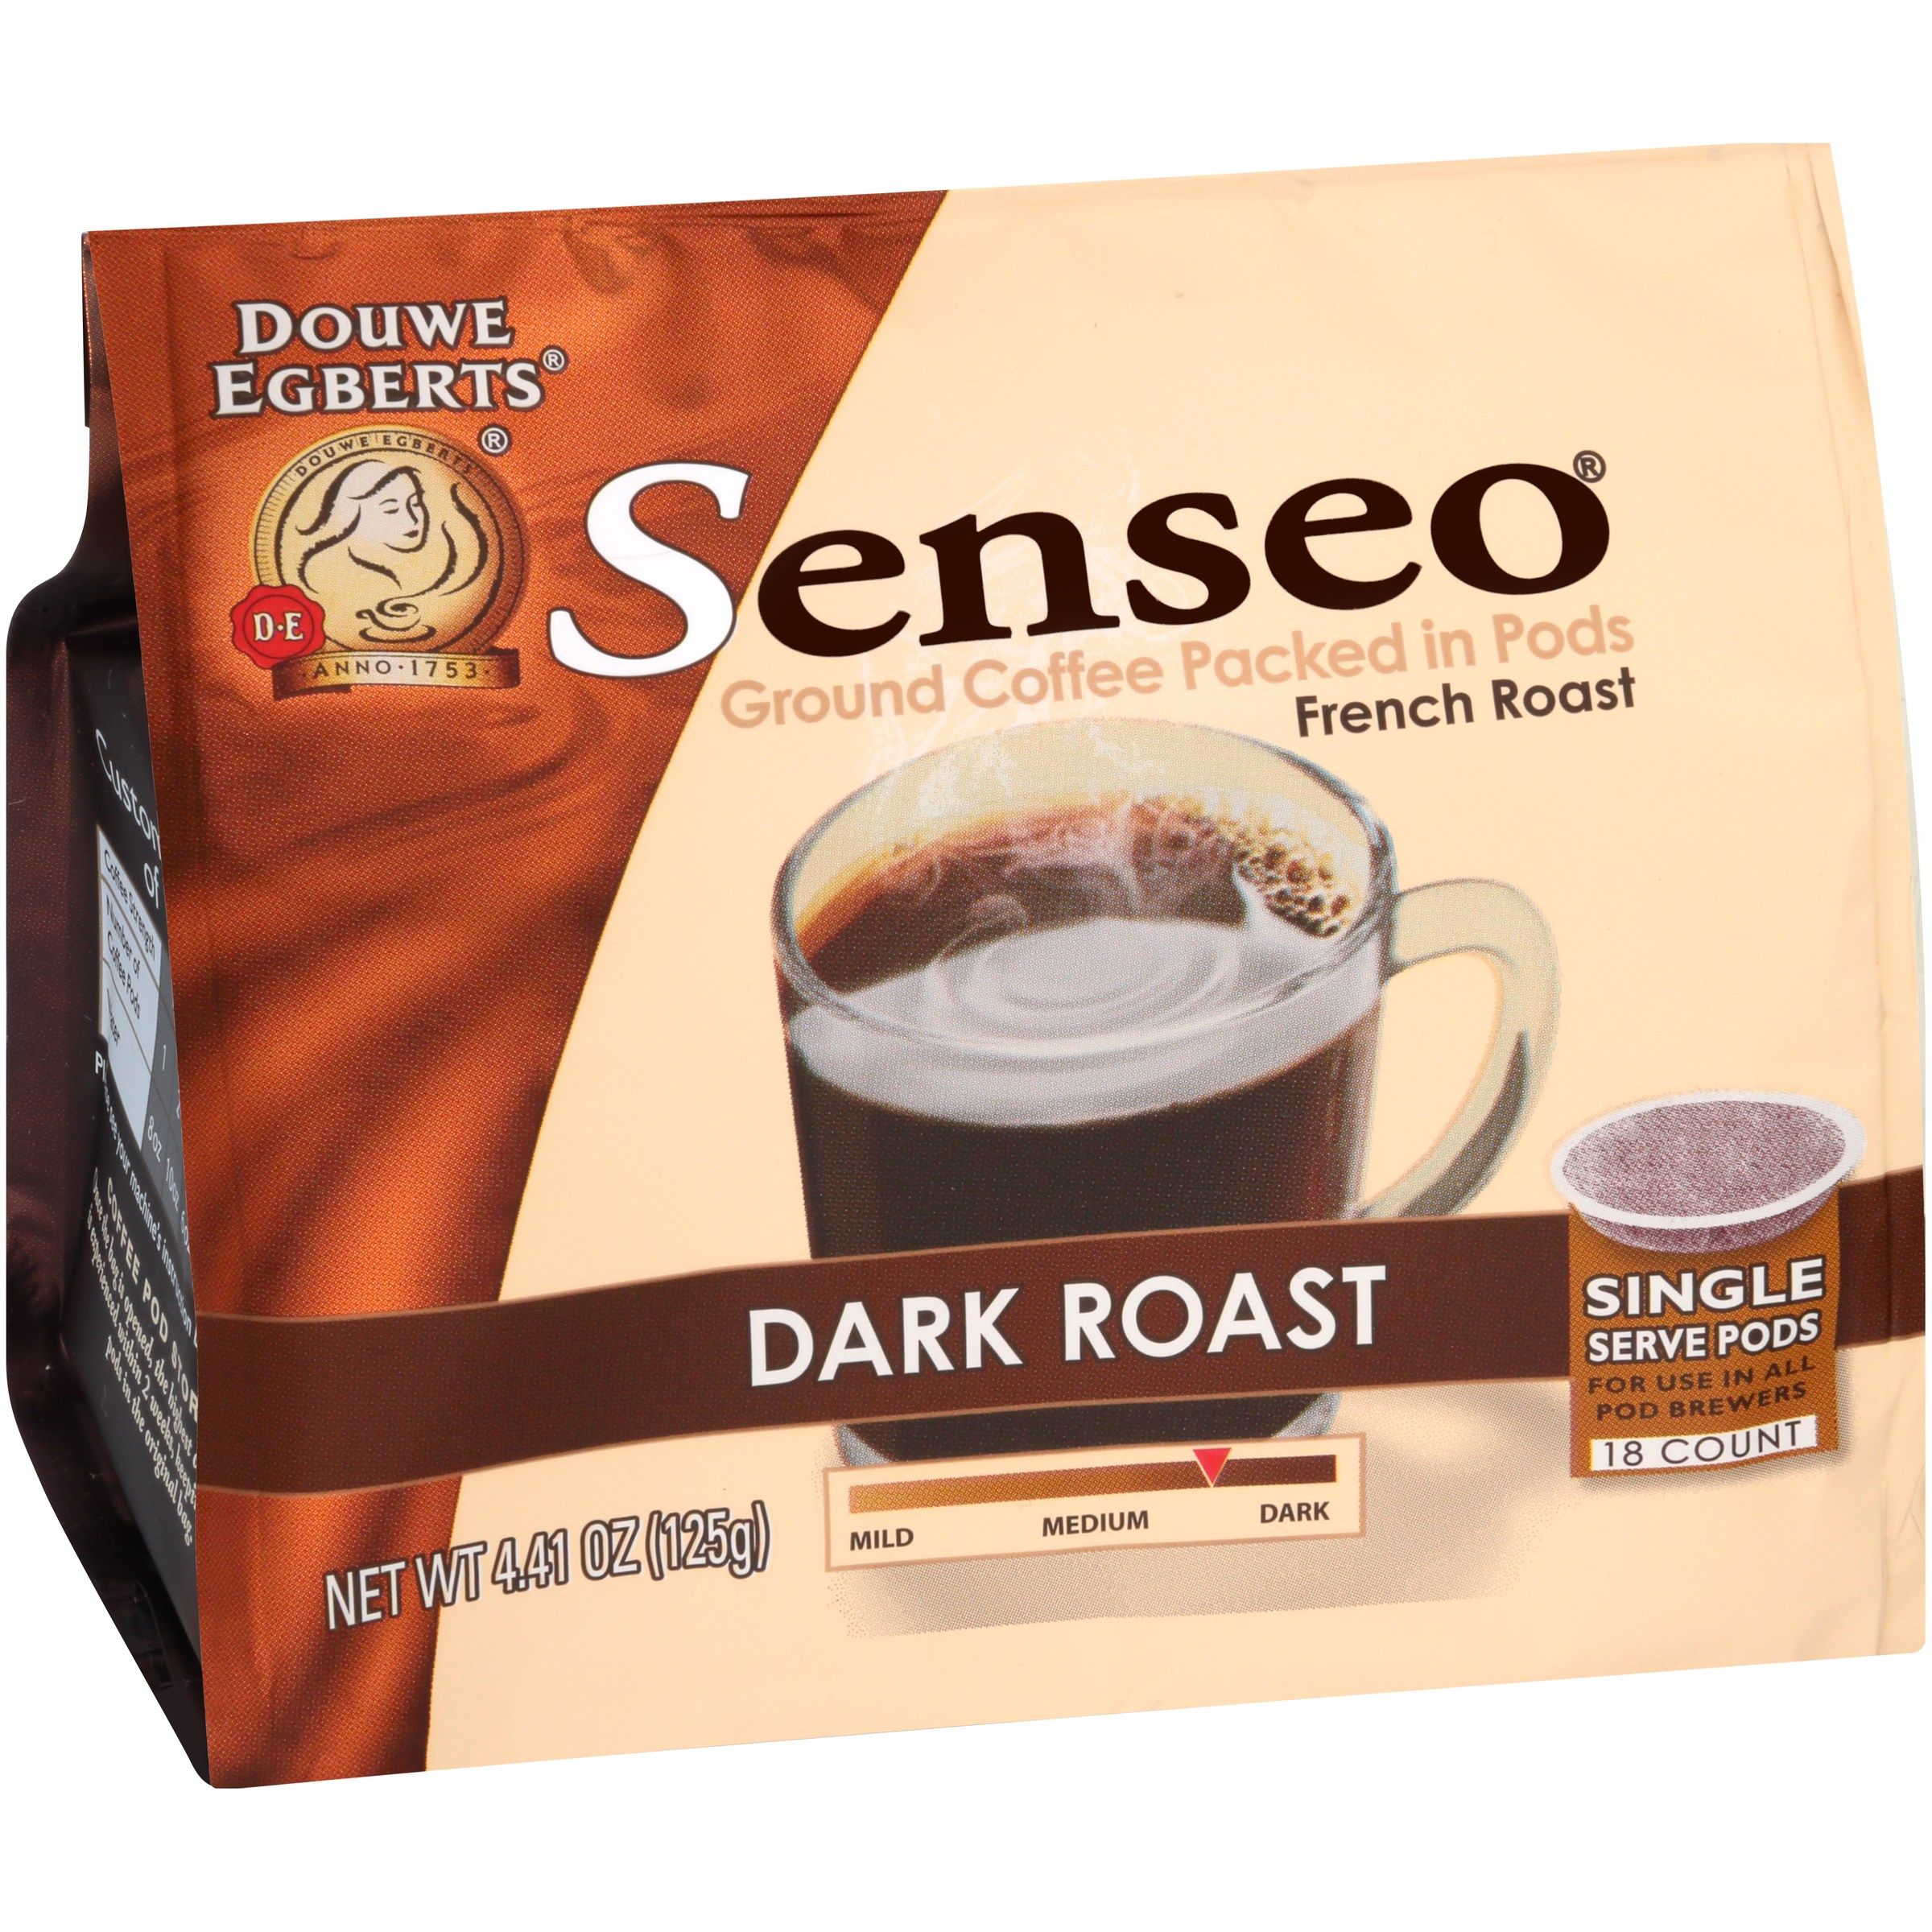 Senseo® Dark Roast French Roast Ground Coffee 18 ct Single Serve Pods 4.41 oz.